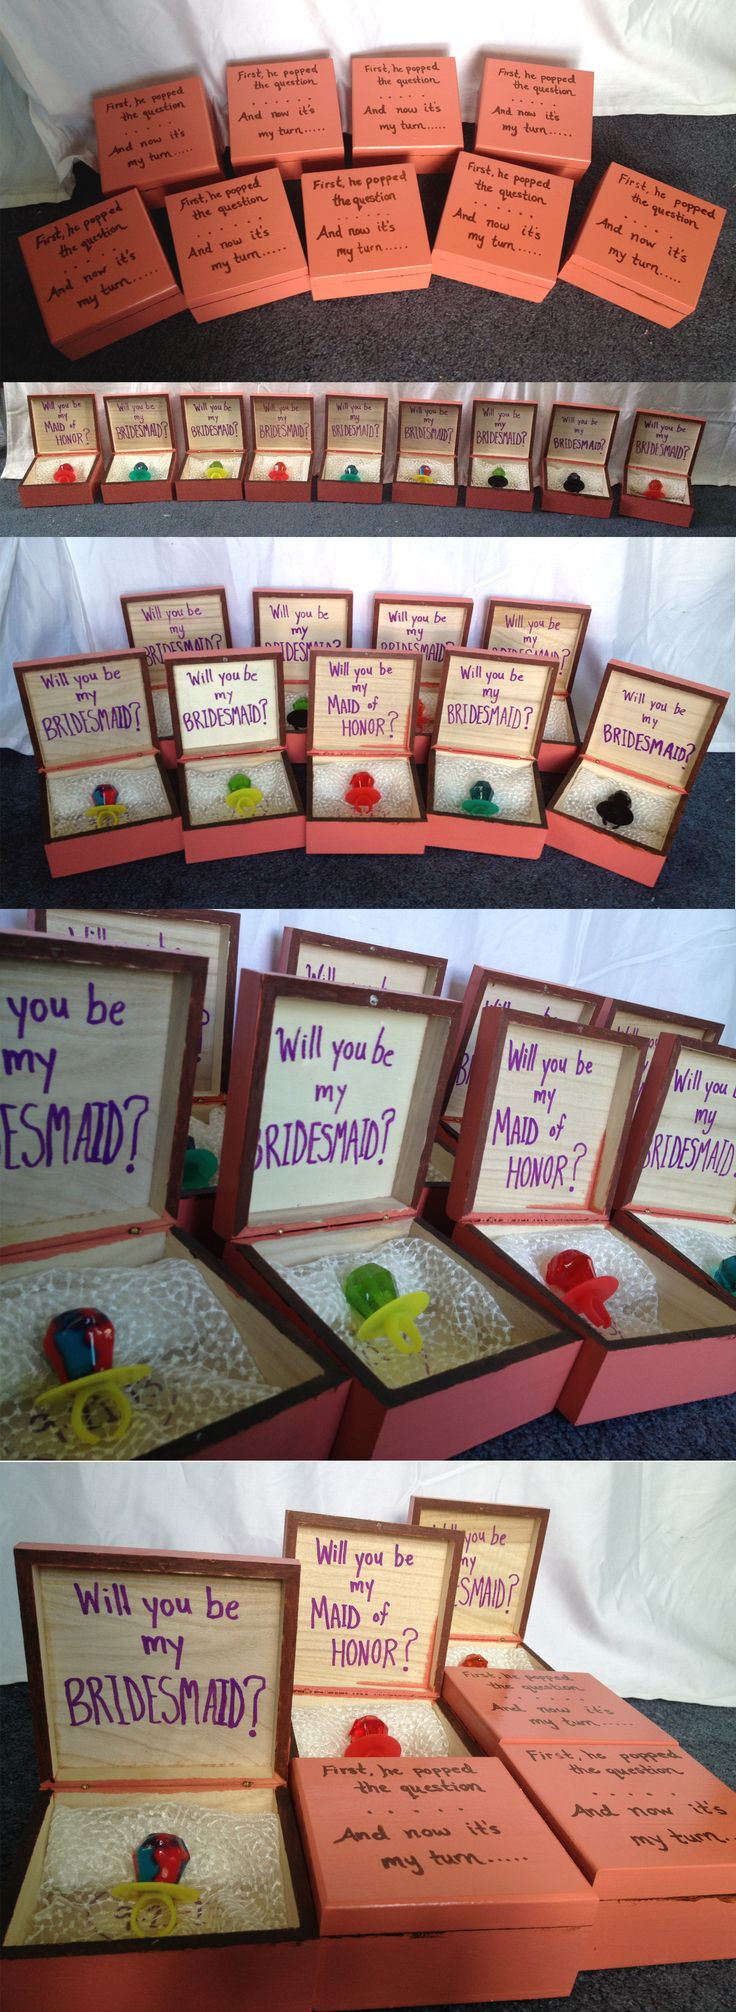 "How I ""popped the question"" to my bridesmaids!! ""First he popped the question and now it's my turn...will you be my bridesmaid?"""